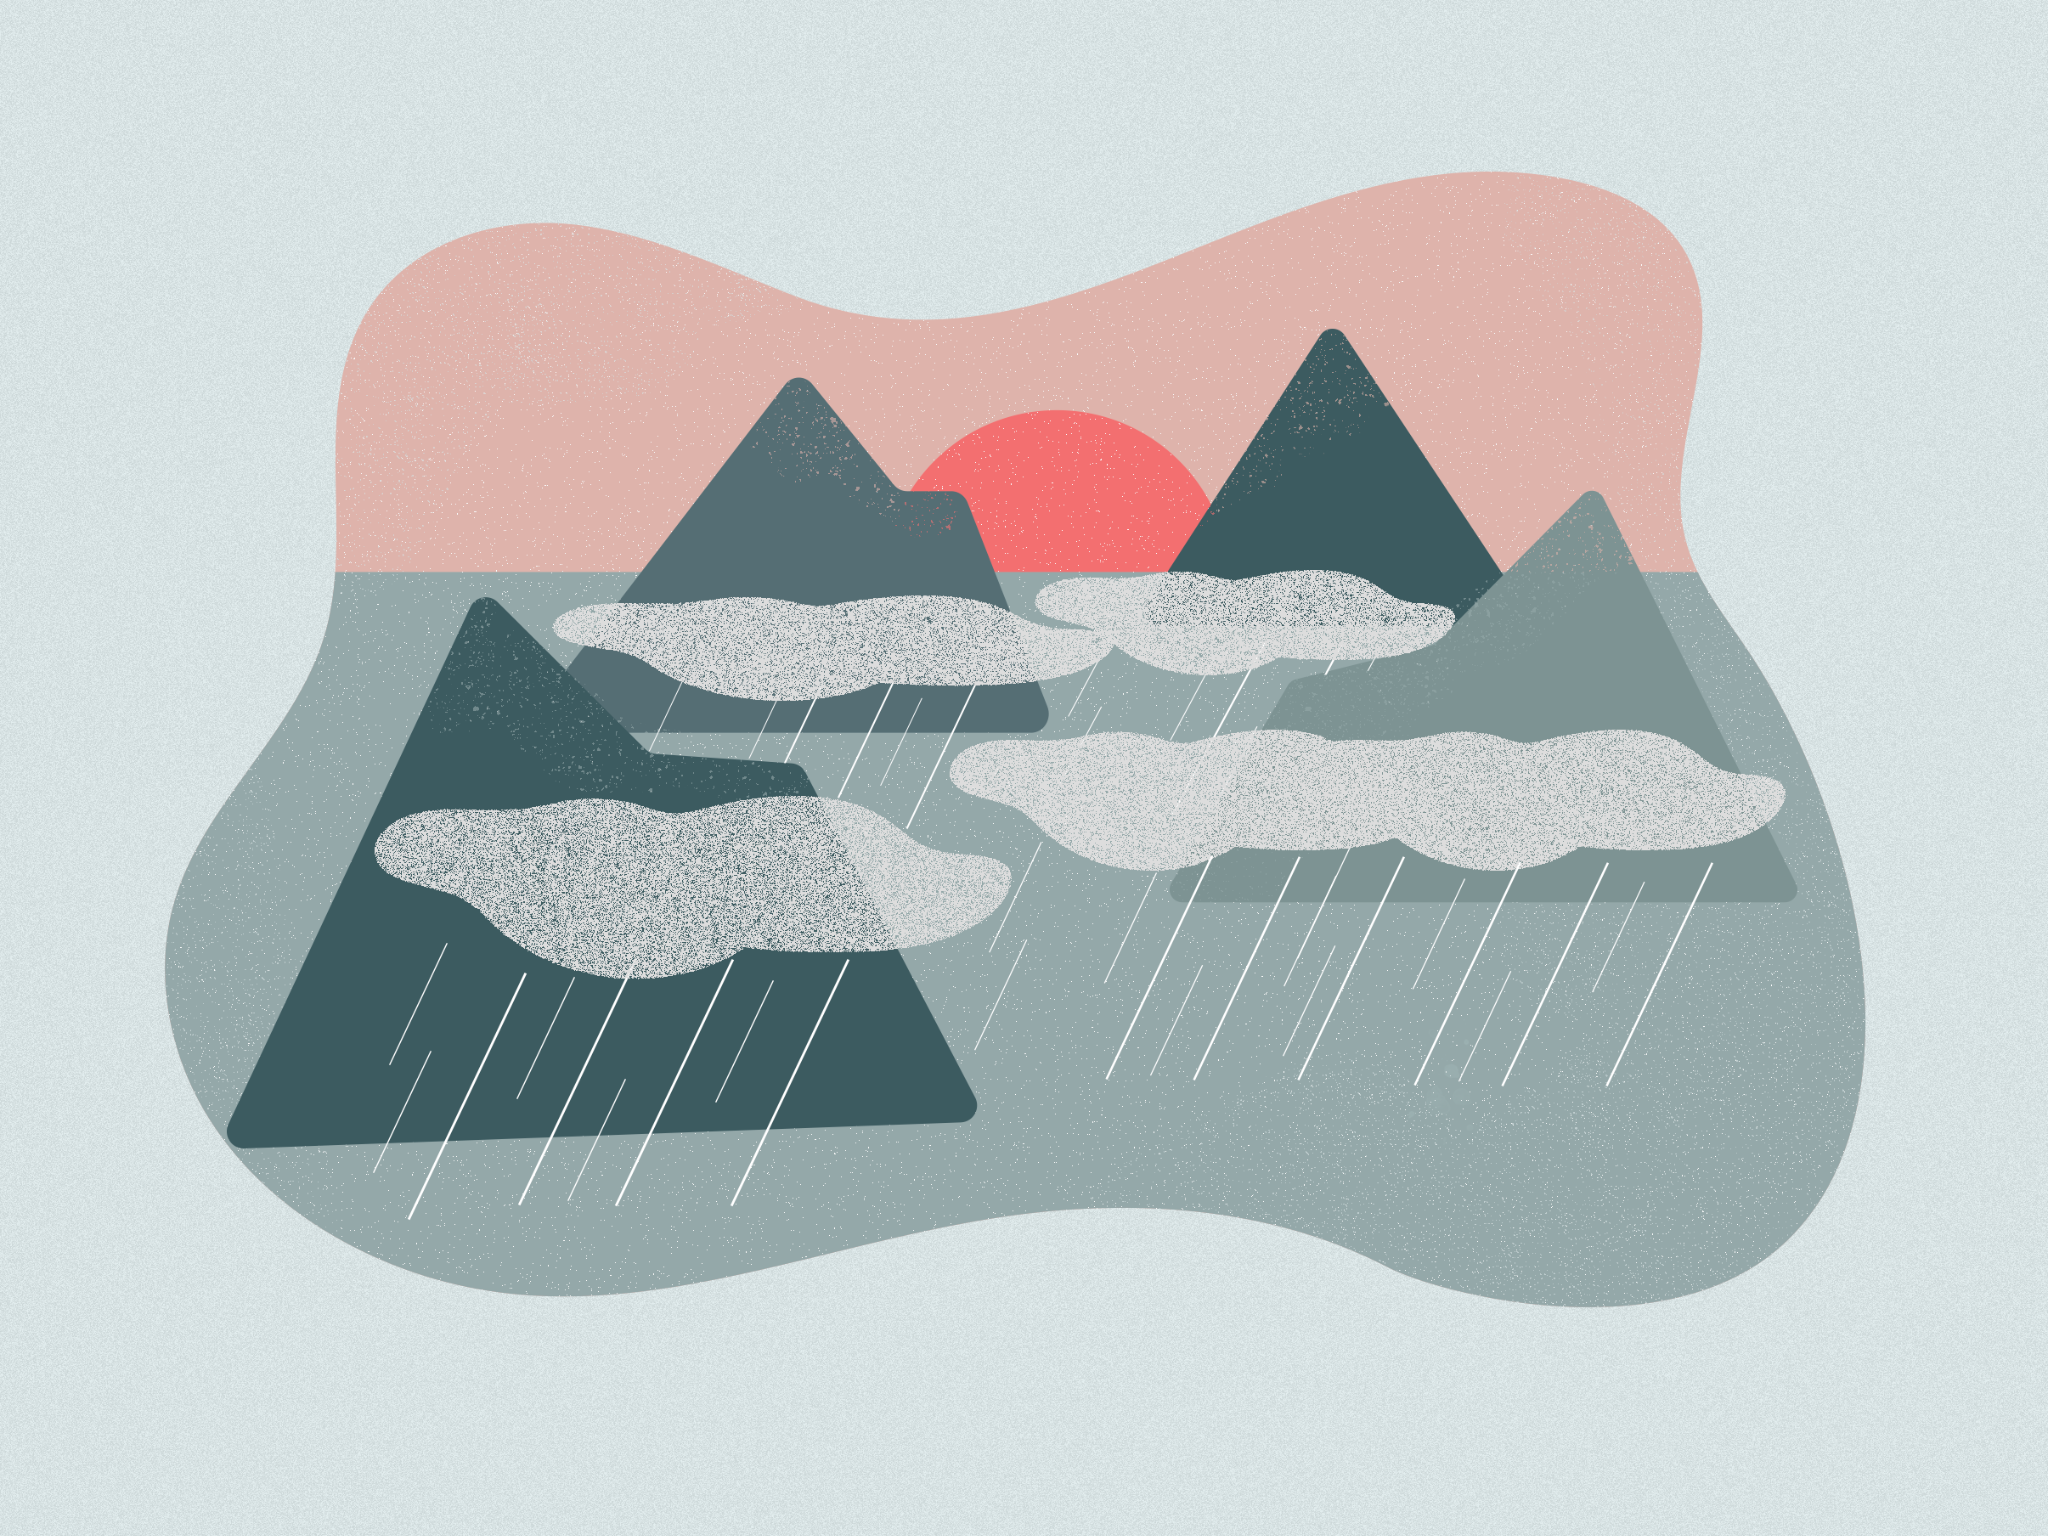 illustration of mountains with rain falling and sunrise behind